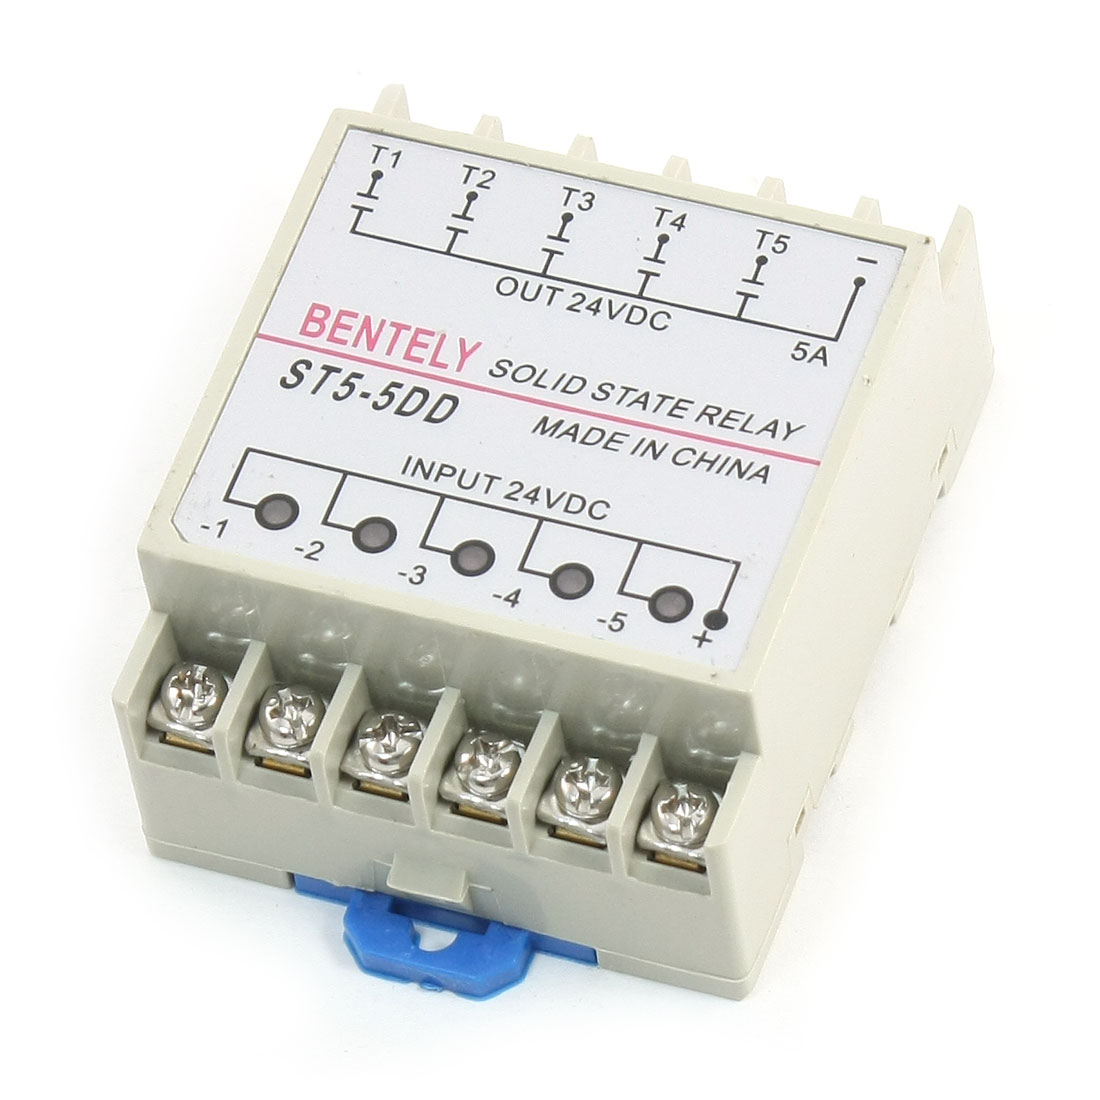 ST5-5DD SSR 12 Terminals Five Phase DC to DC 24V 5A Solid State Relay